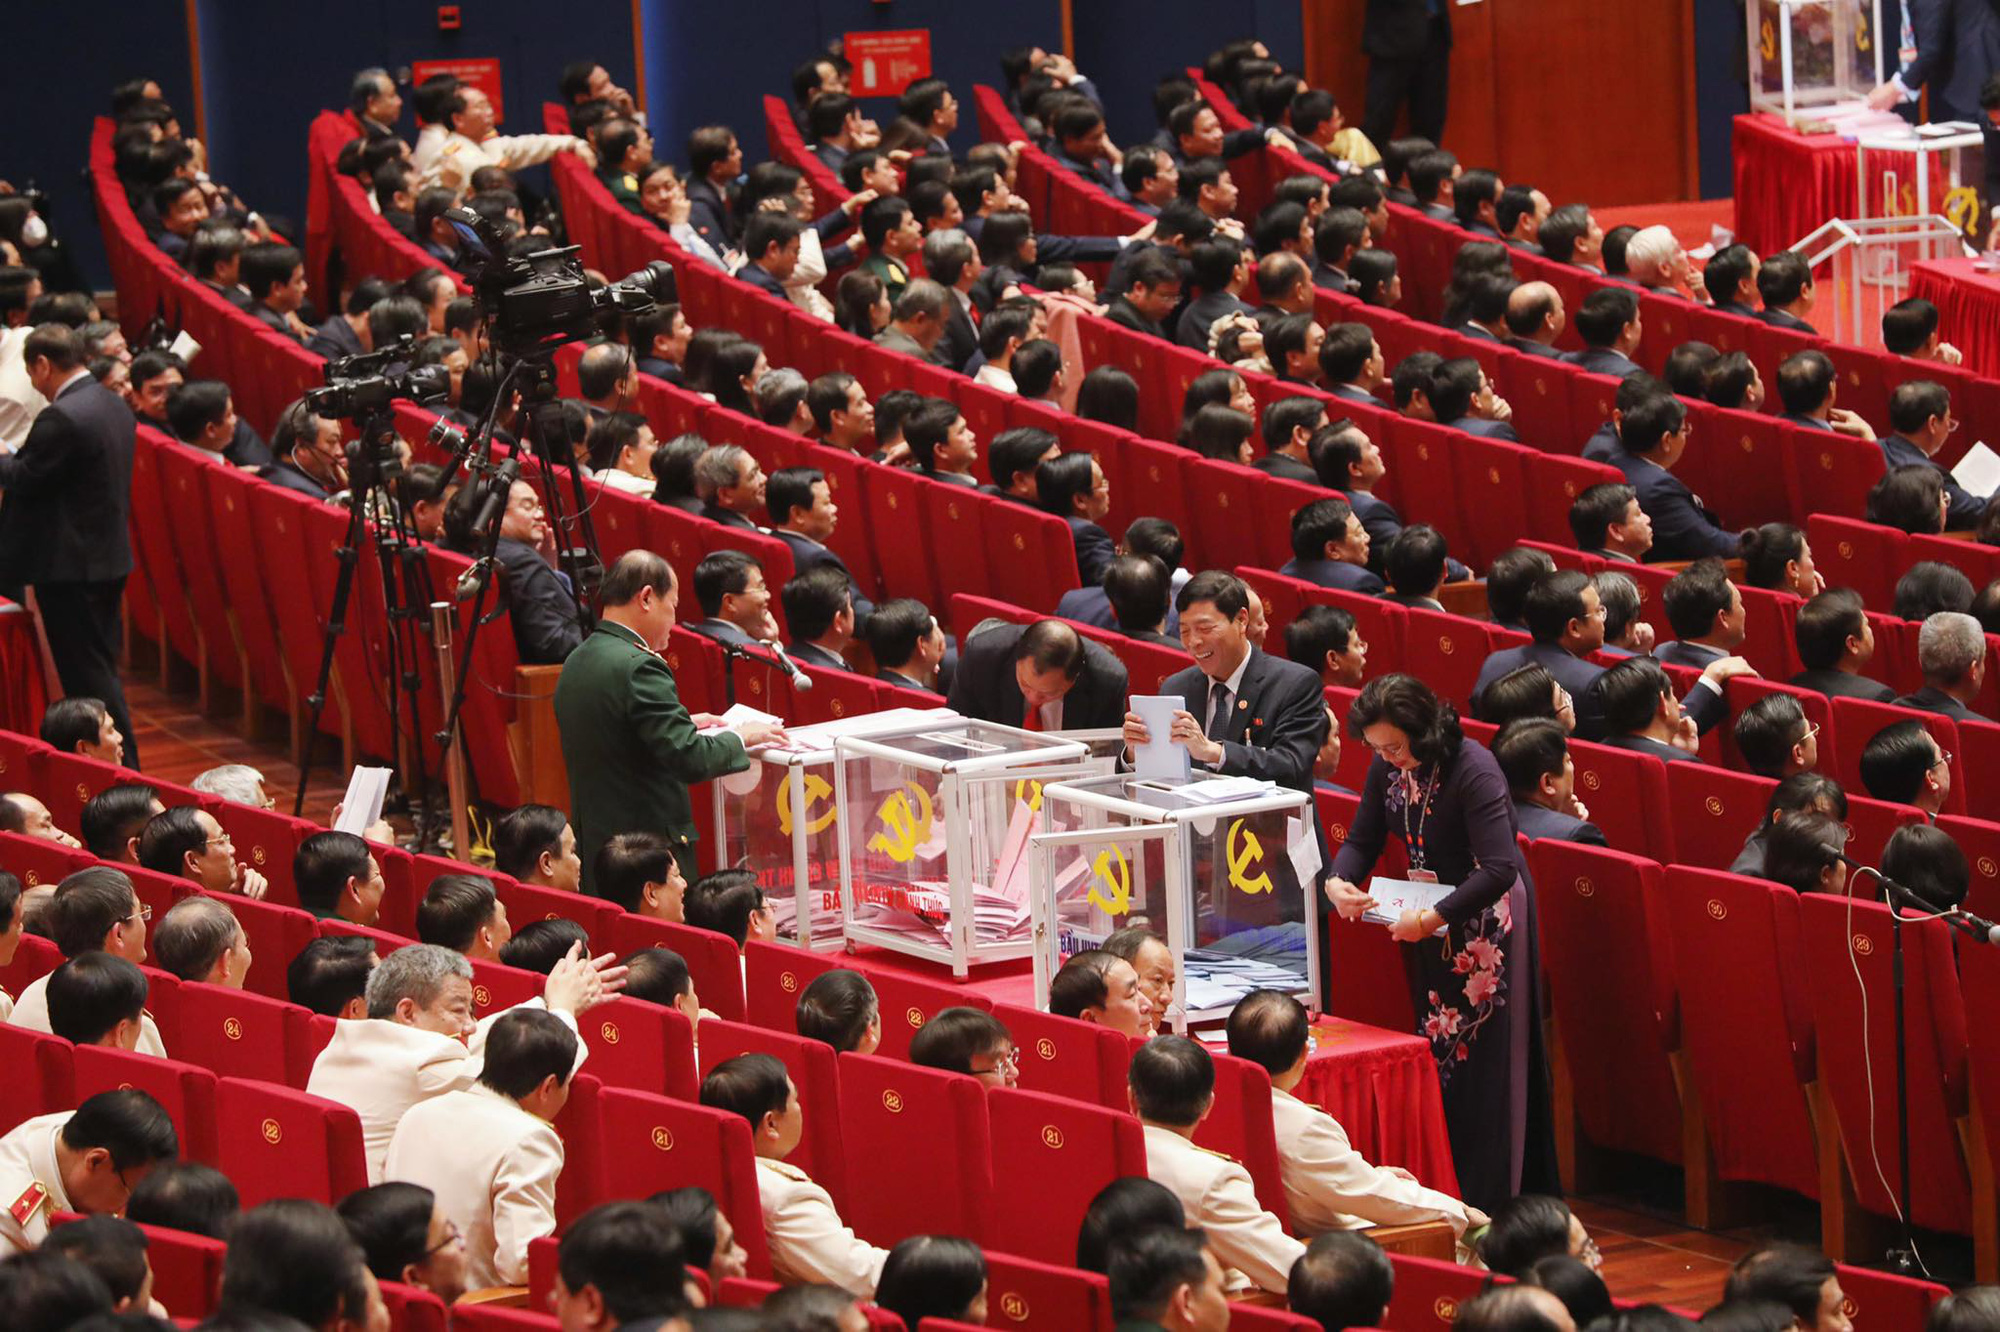 Delegates cast their ballots to vote for members of the 13th-tenure Party Central Committee during the 13th National Party Congress in Hanoi, January 30, 2021. Photo: Minh Linh / Tuoi Tre